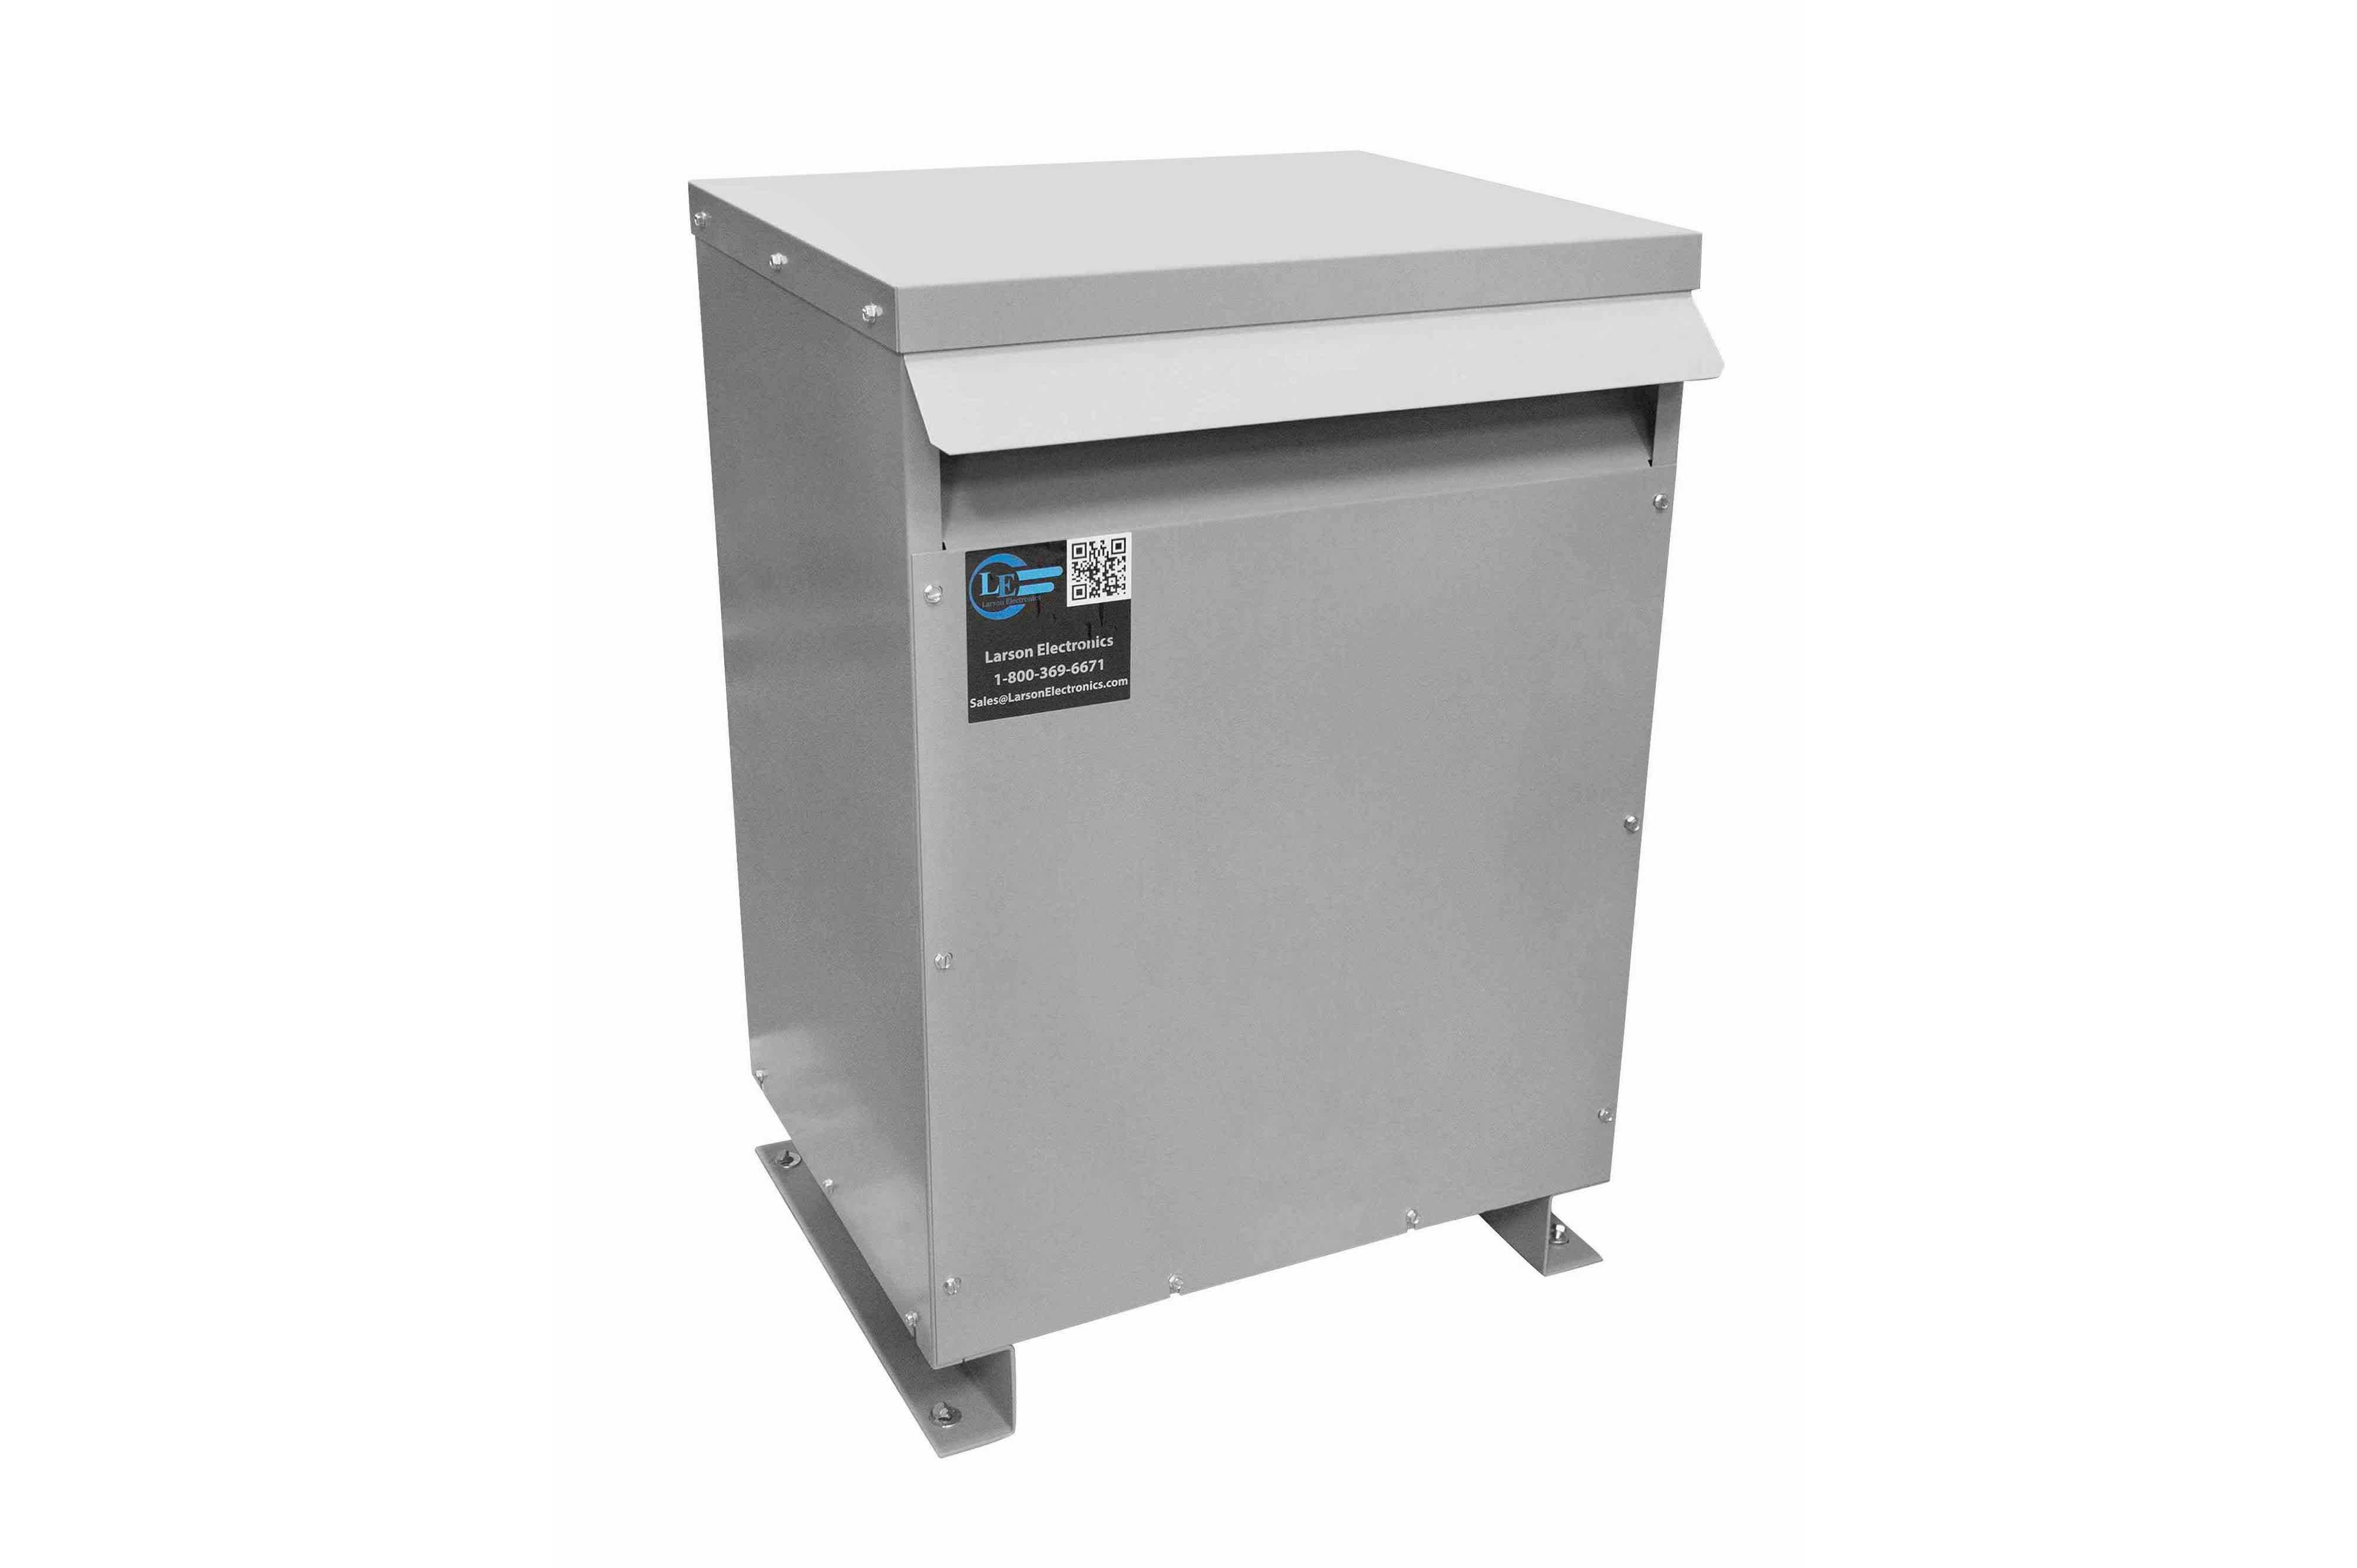 22.5 kVA 3PH Isolation Transformer, 400V Wye Primary, 480V Delta Secondary, N3R, Ventilated, 60 Hz